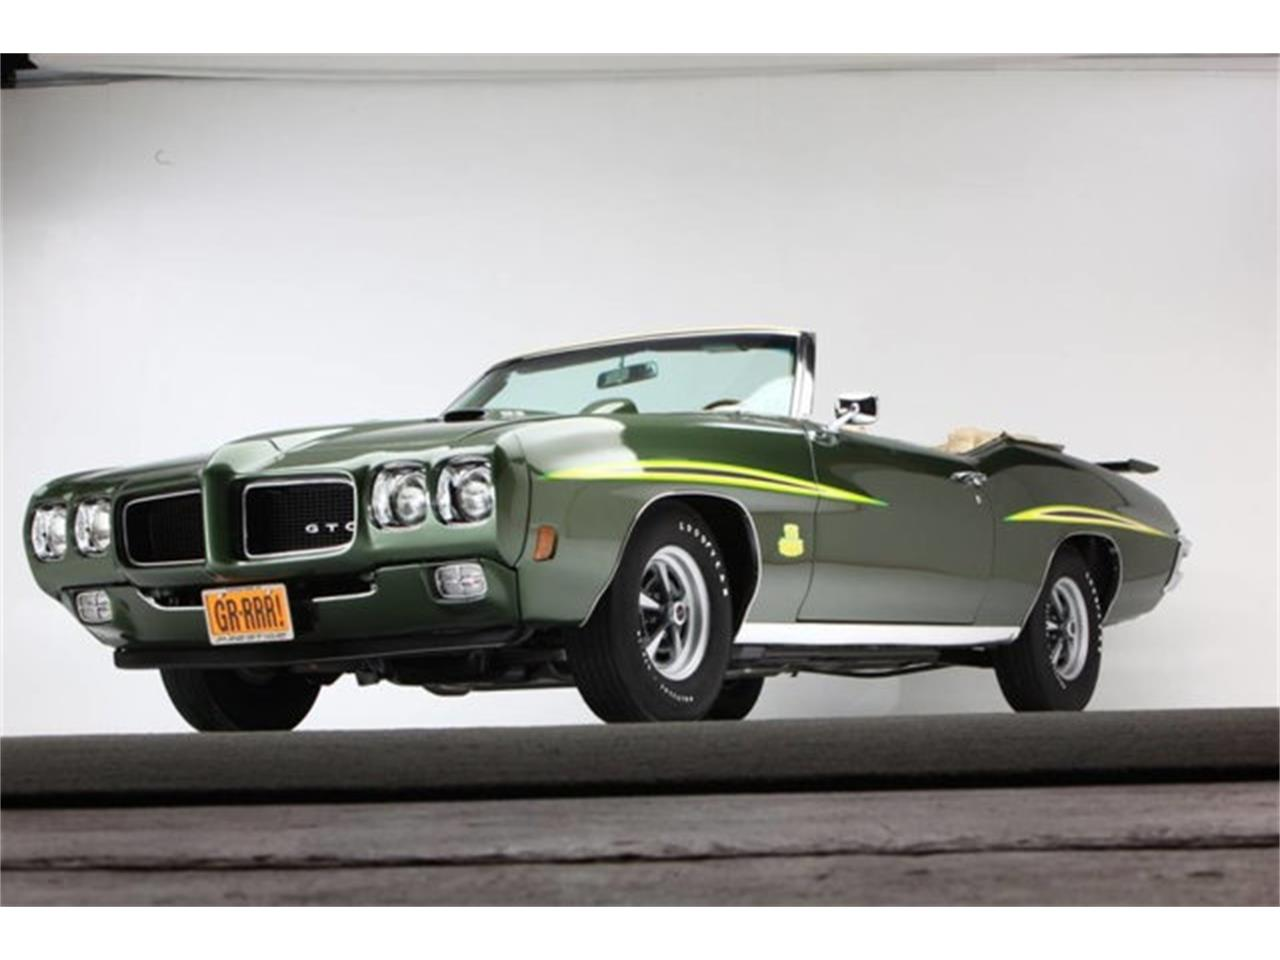 Large Picture of Classic '70 GTO (The Judge) - $219,000.00 Offered by Prestige Motor Car Co. - QDN8